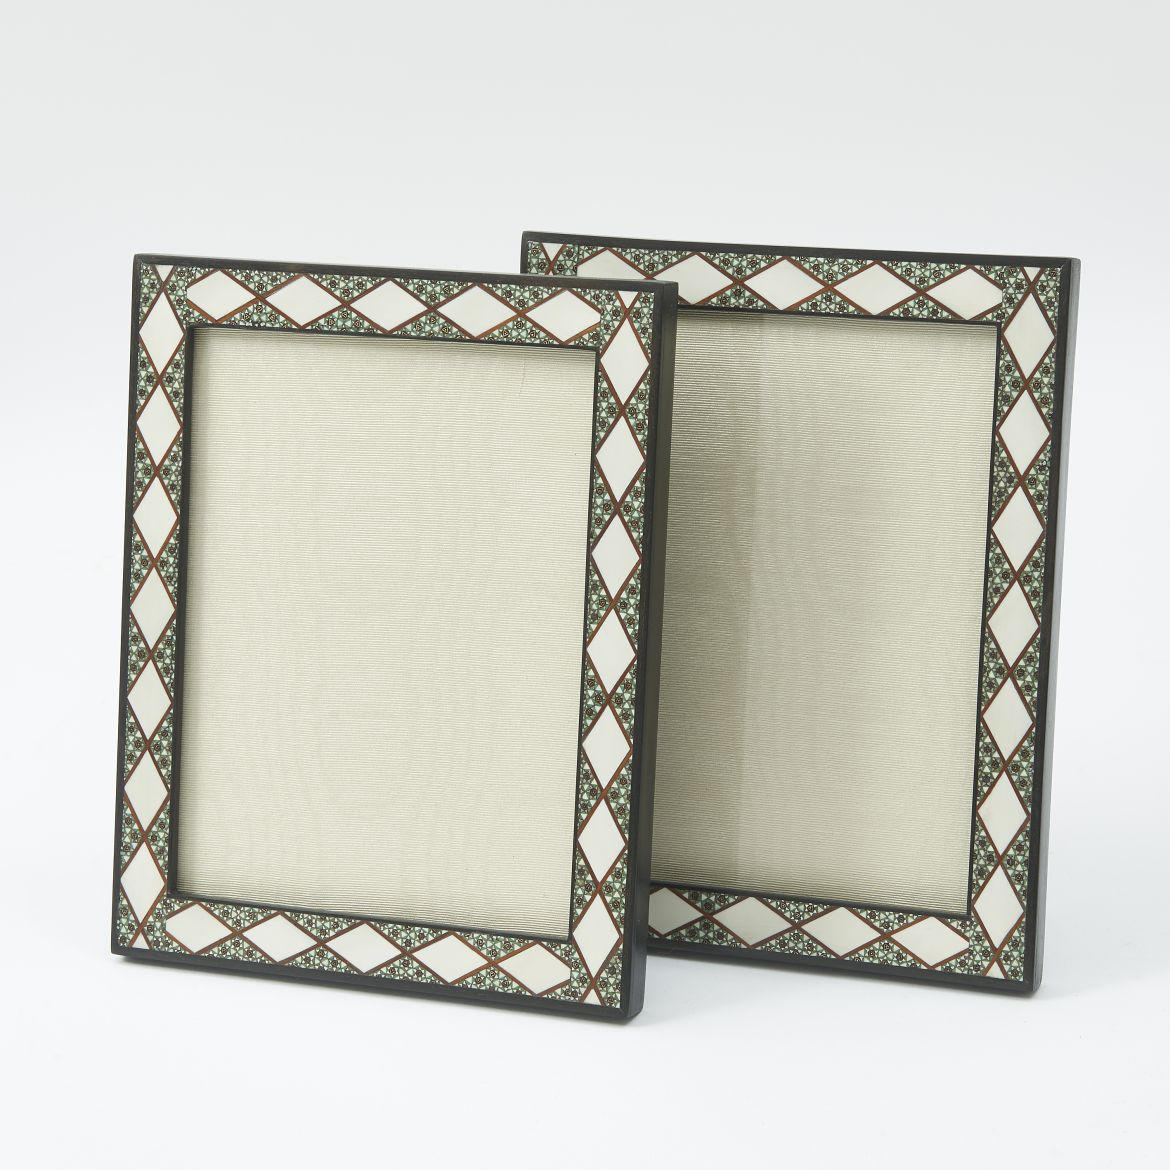 Pair of Sadeli Frames